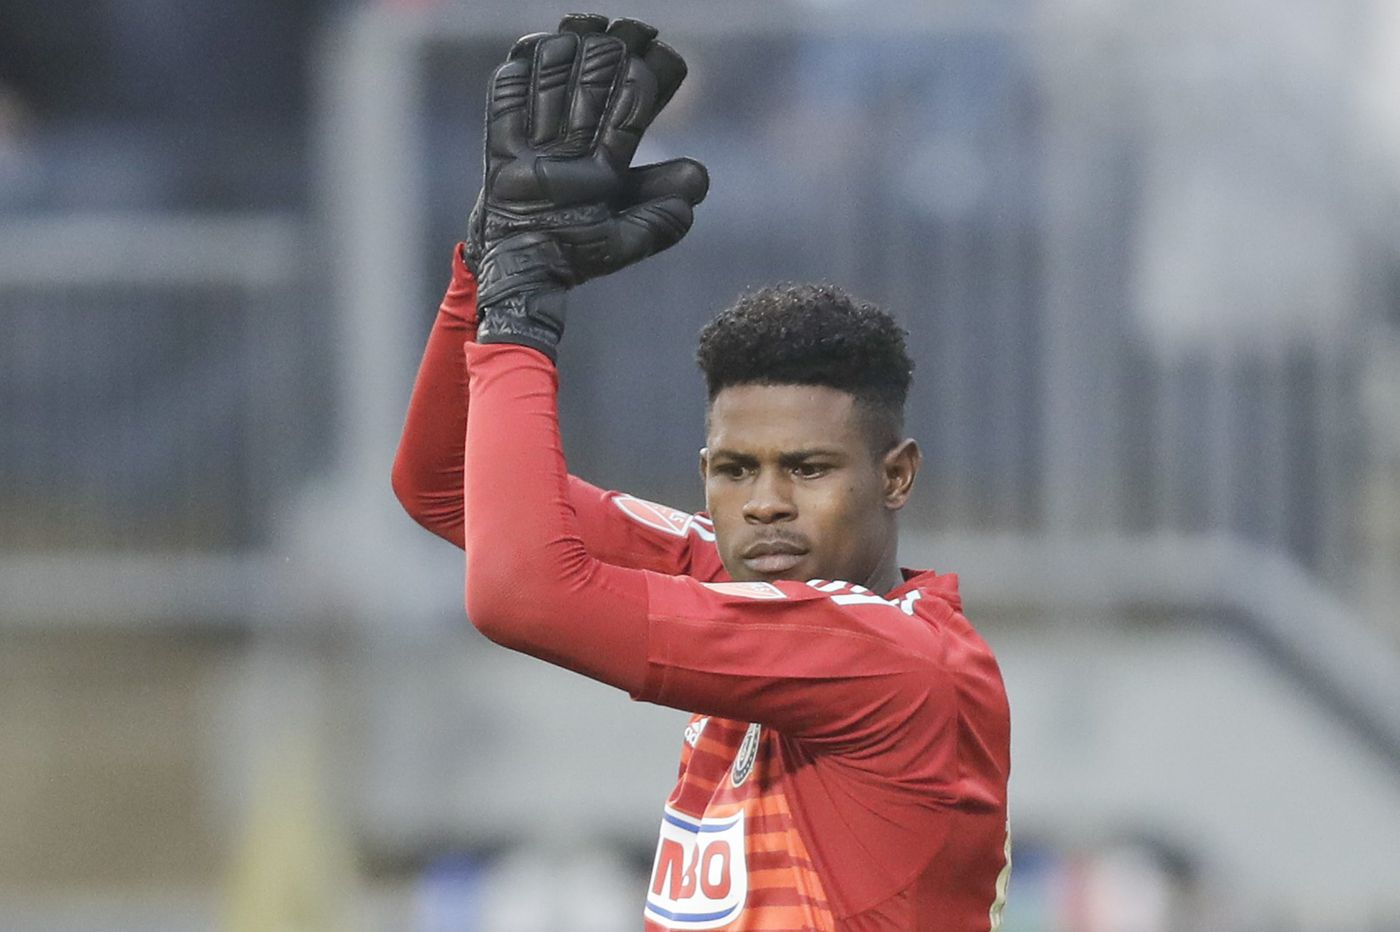 Union's Andre Blake recovering from illness for Open Cup final; Auston Trusty faces marathon workload